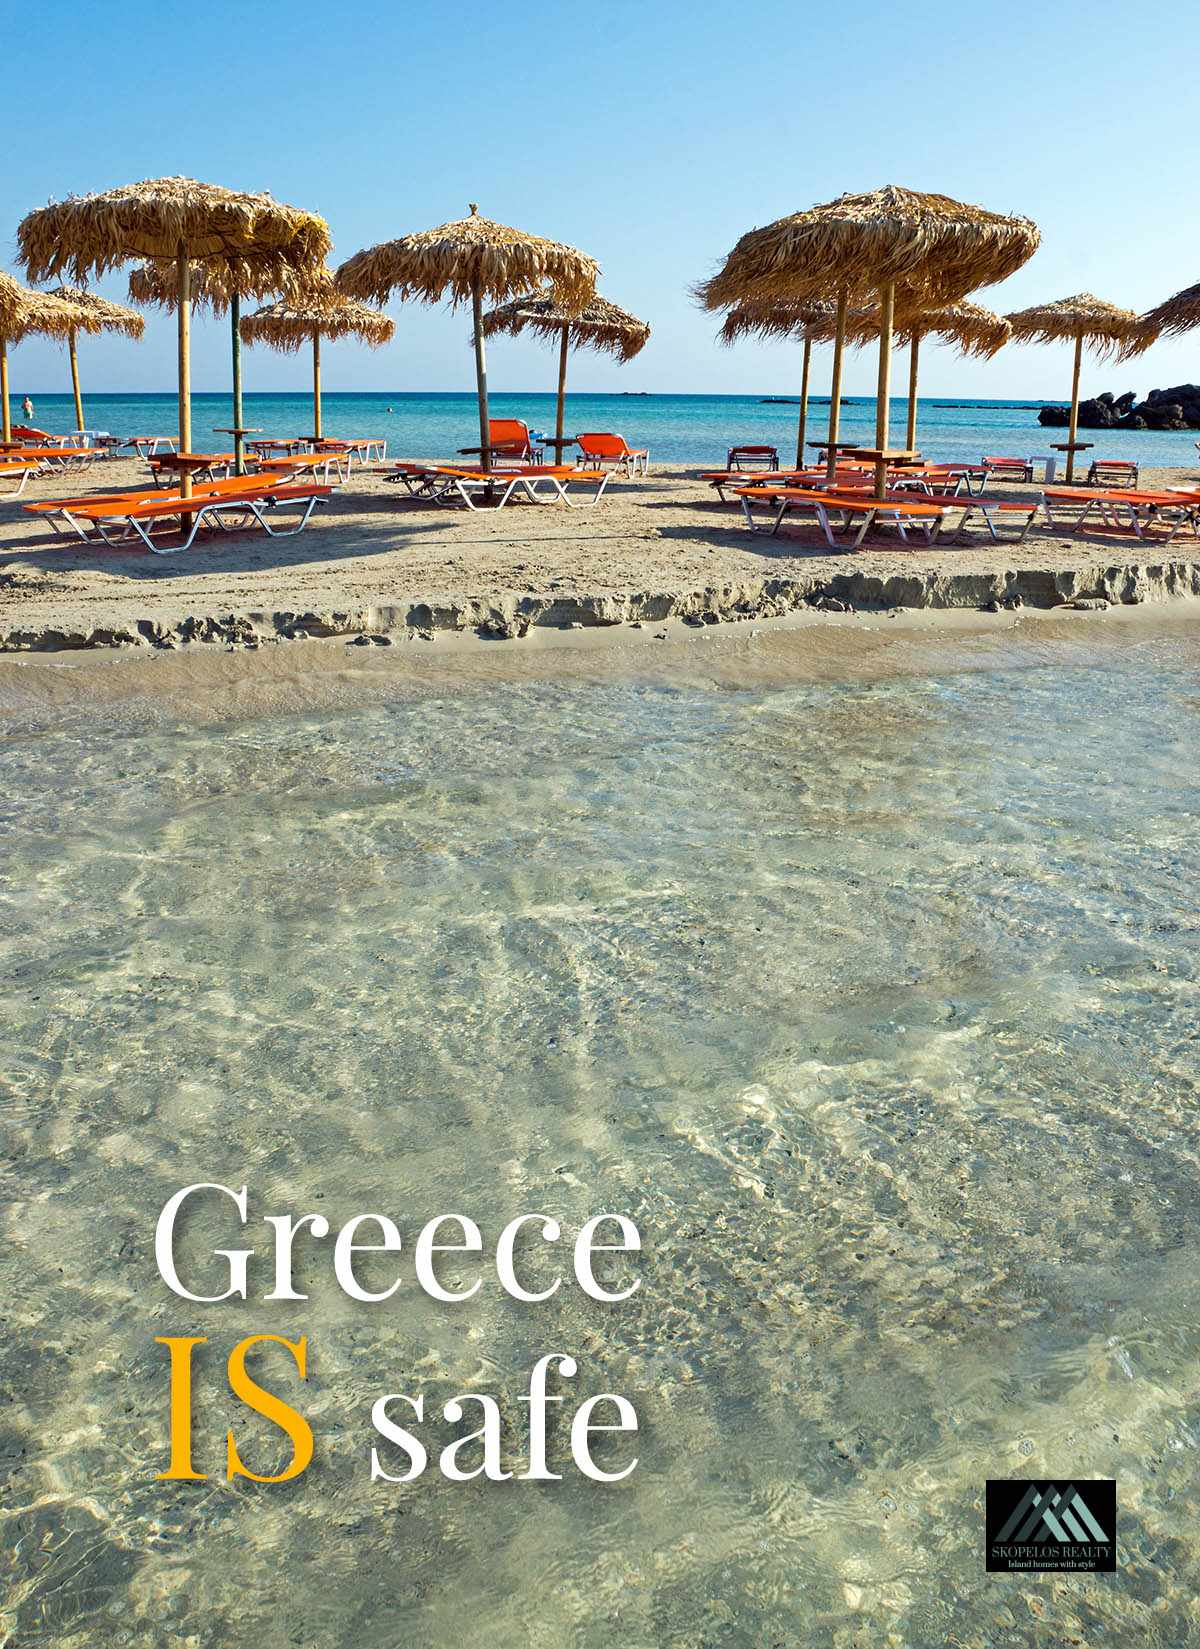 Travel to Greece, it is safe